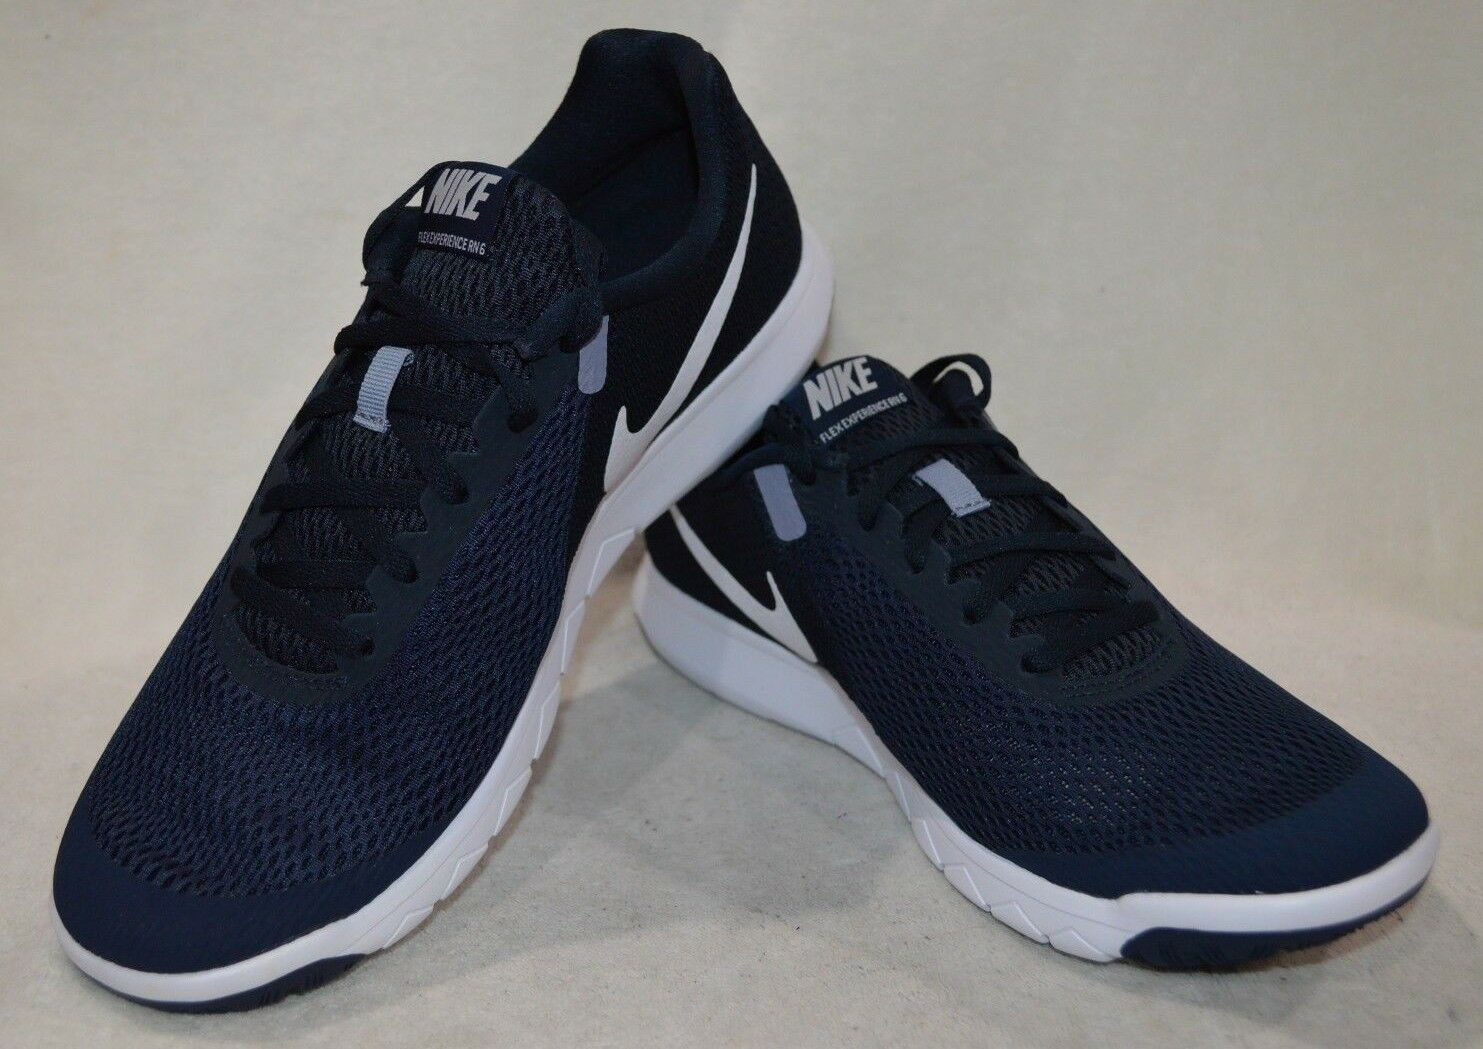 Nike Men's Flex Experience RN 6 Obsidian/White Running Shoes-Assorted Sizes NWB